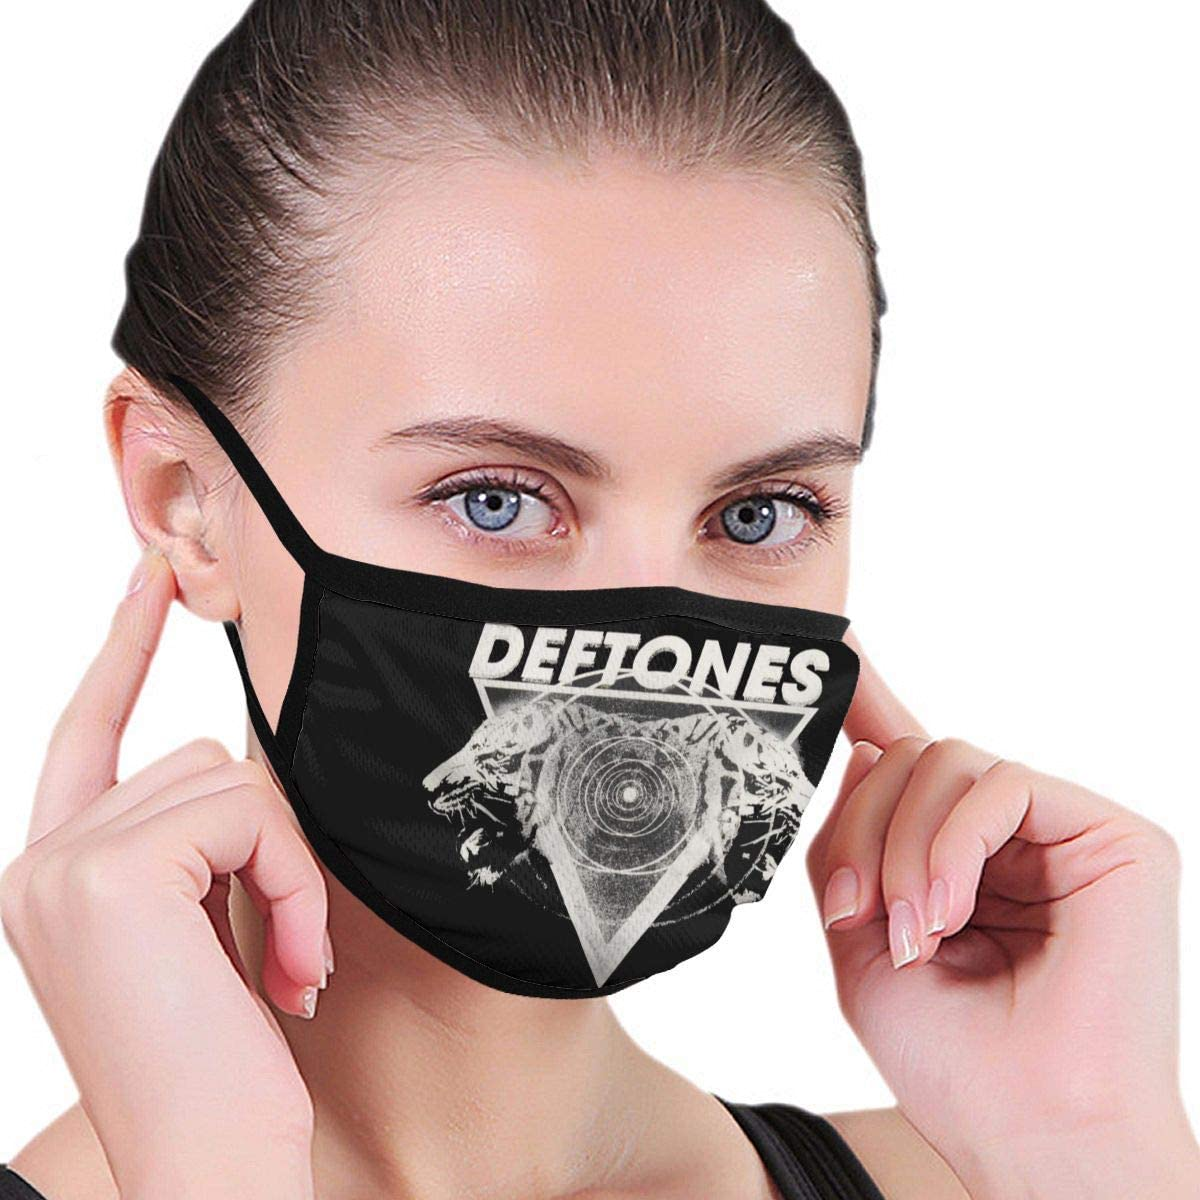 Qwertyi Deftones Hypno Tiger 2012 Tour Face Cover Fashion Anti- Face Mouth Cover Windproof Adjustable Washable Cover for Outdoor Sports